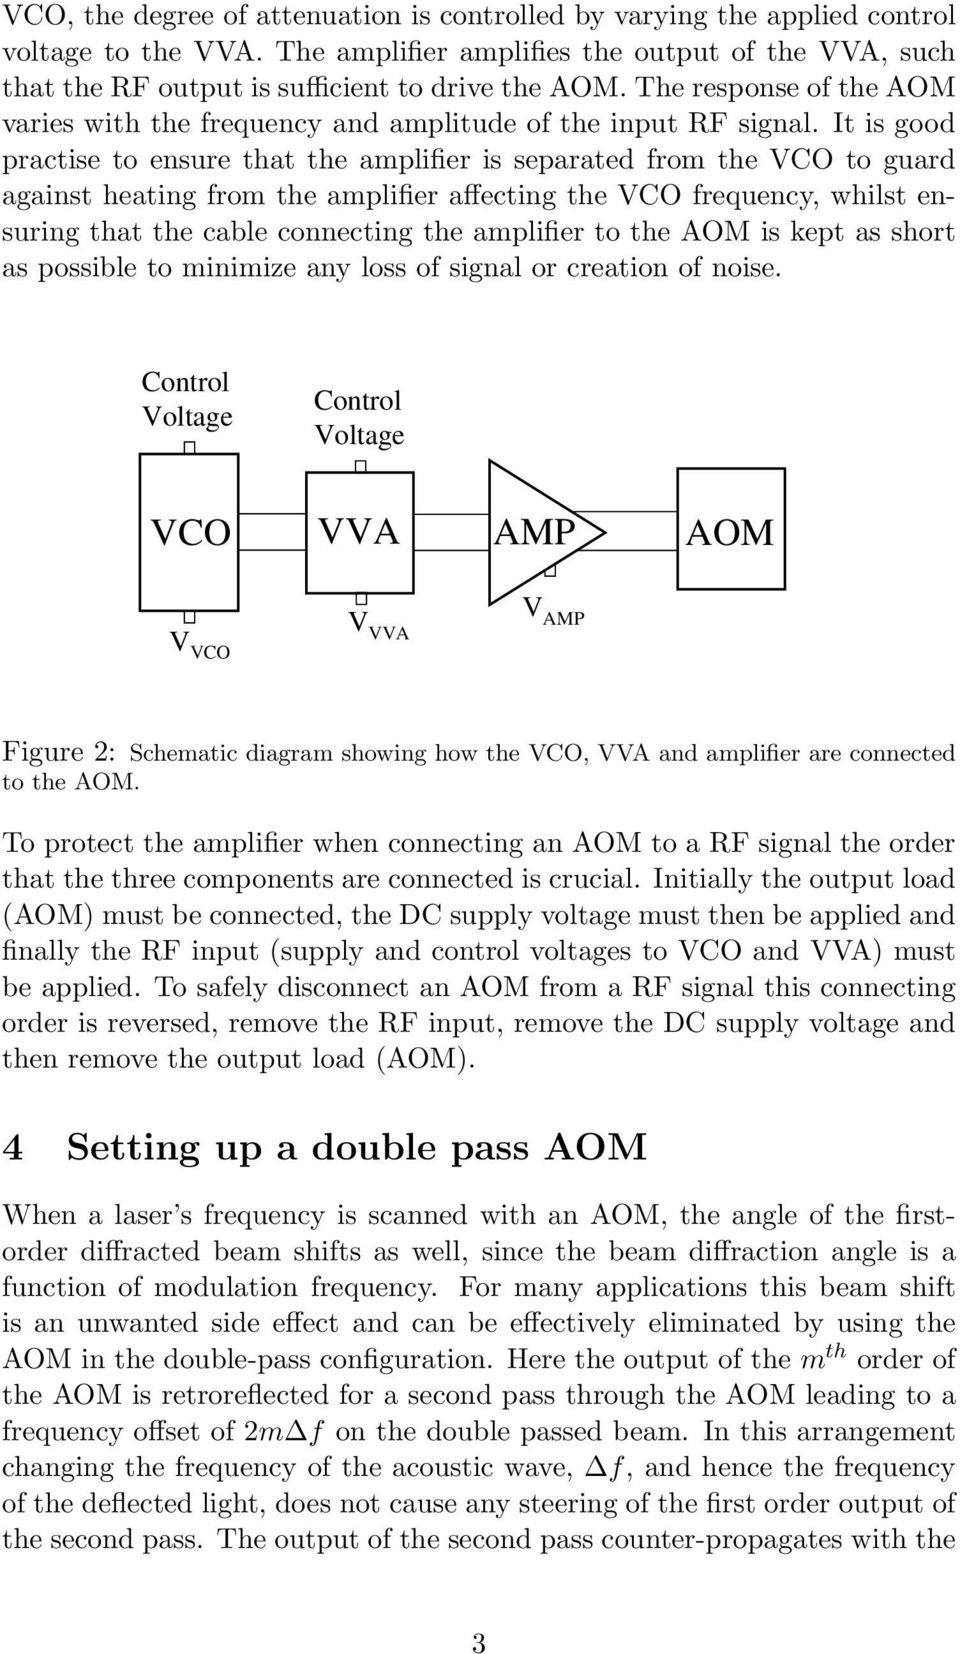 It is good practise to ensure that the amplifier is separated from the VCO to guard against heating from the amplifier affecting the VCO frequency, whilst ensuring that the cable connecting the